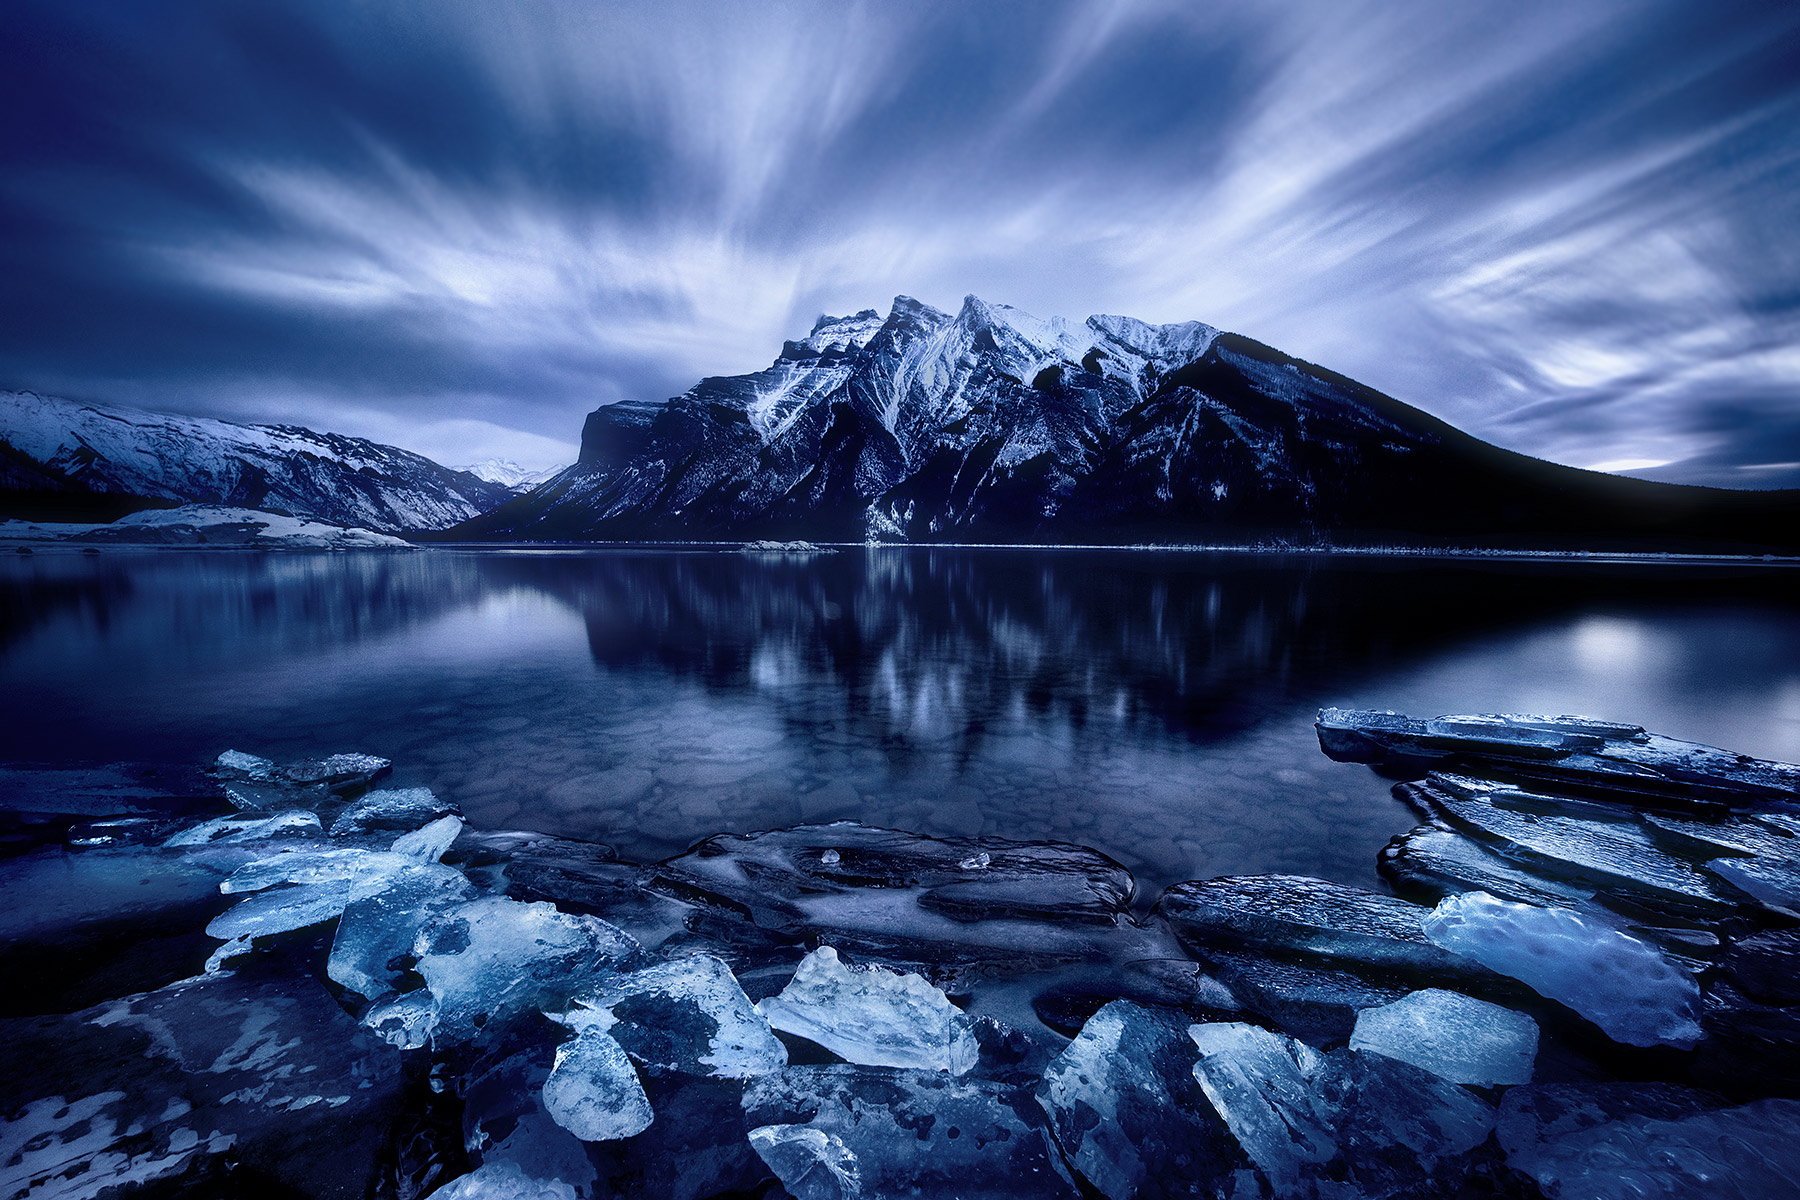 Canadian Rockies, Ice, Shore, Alberta, photo